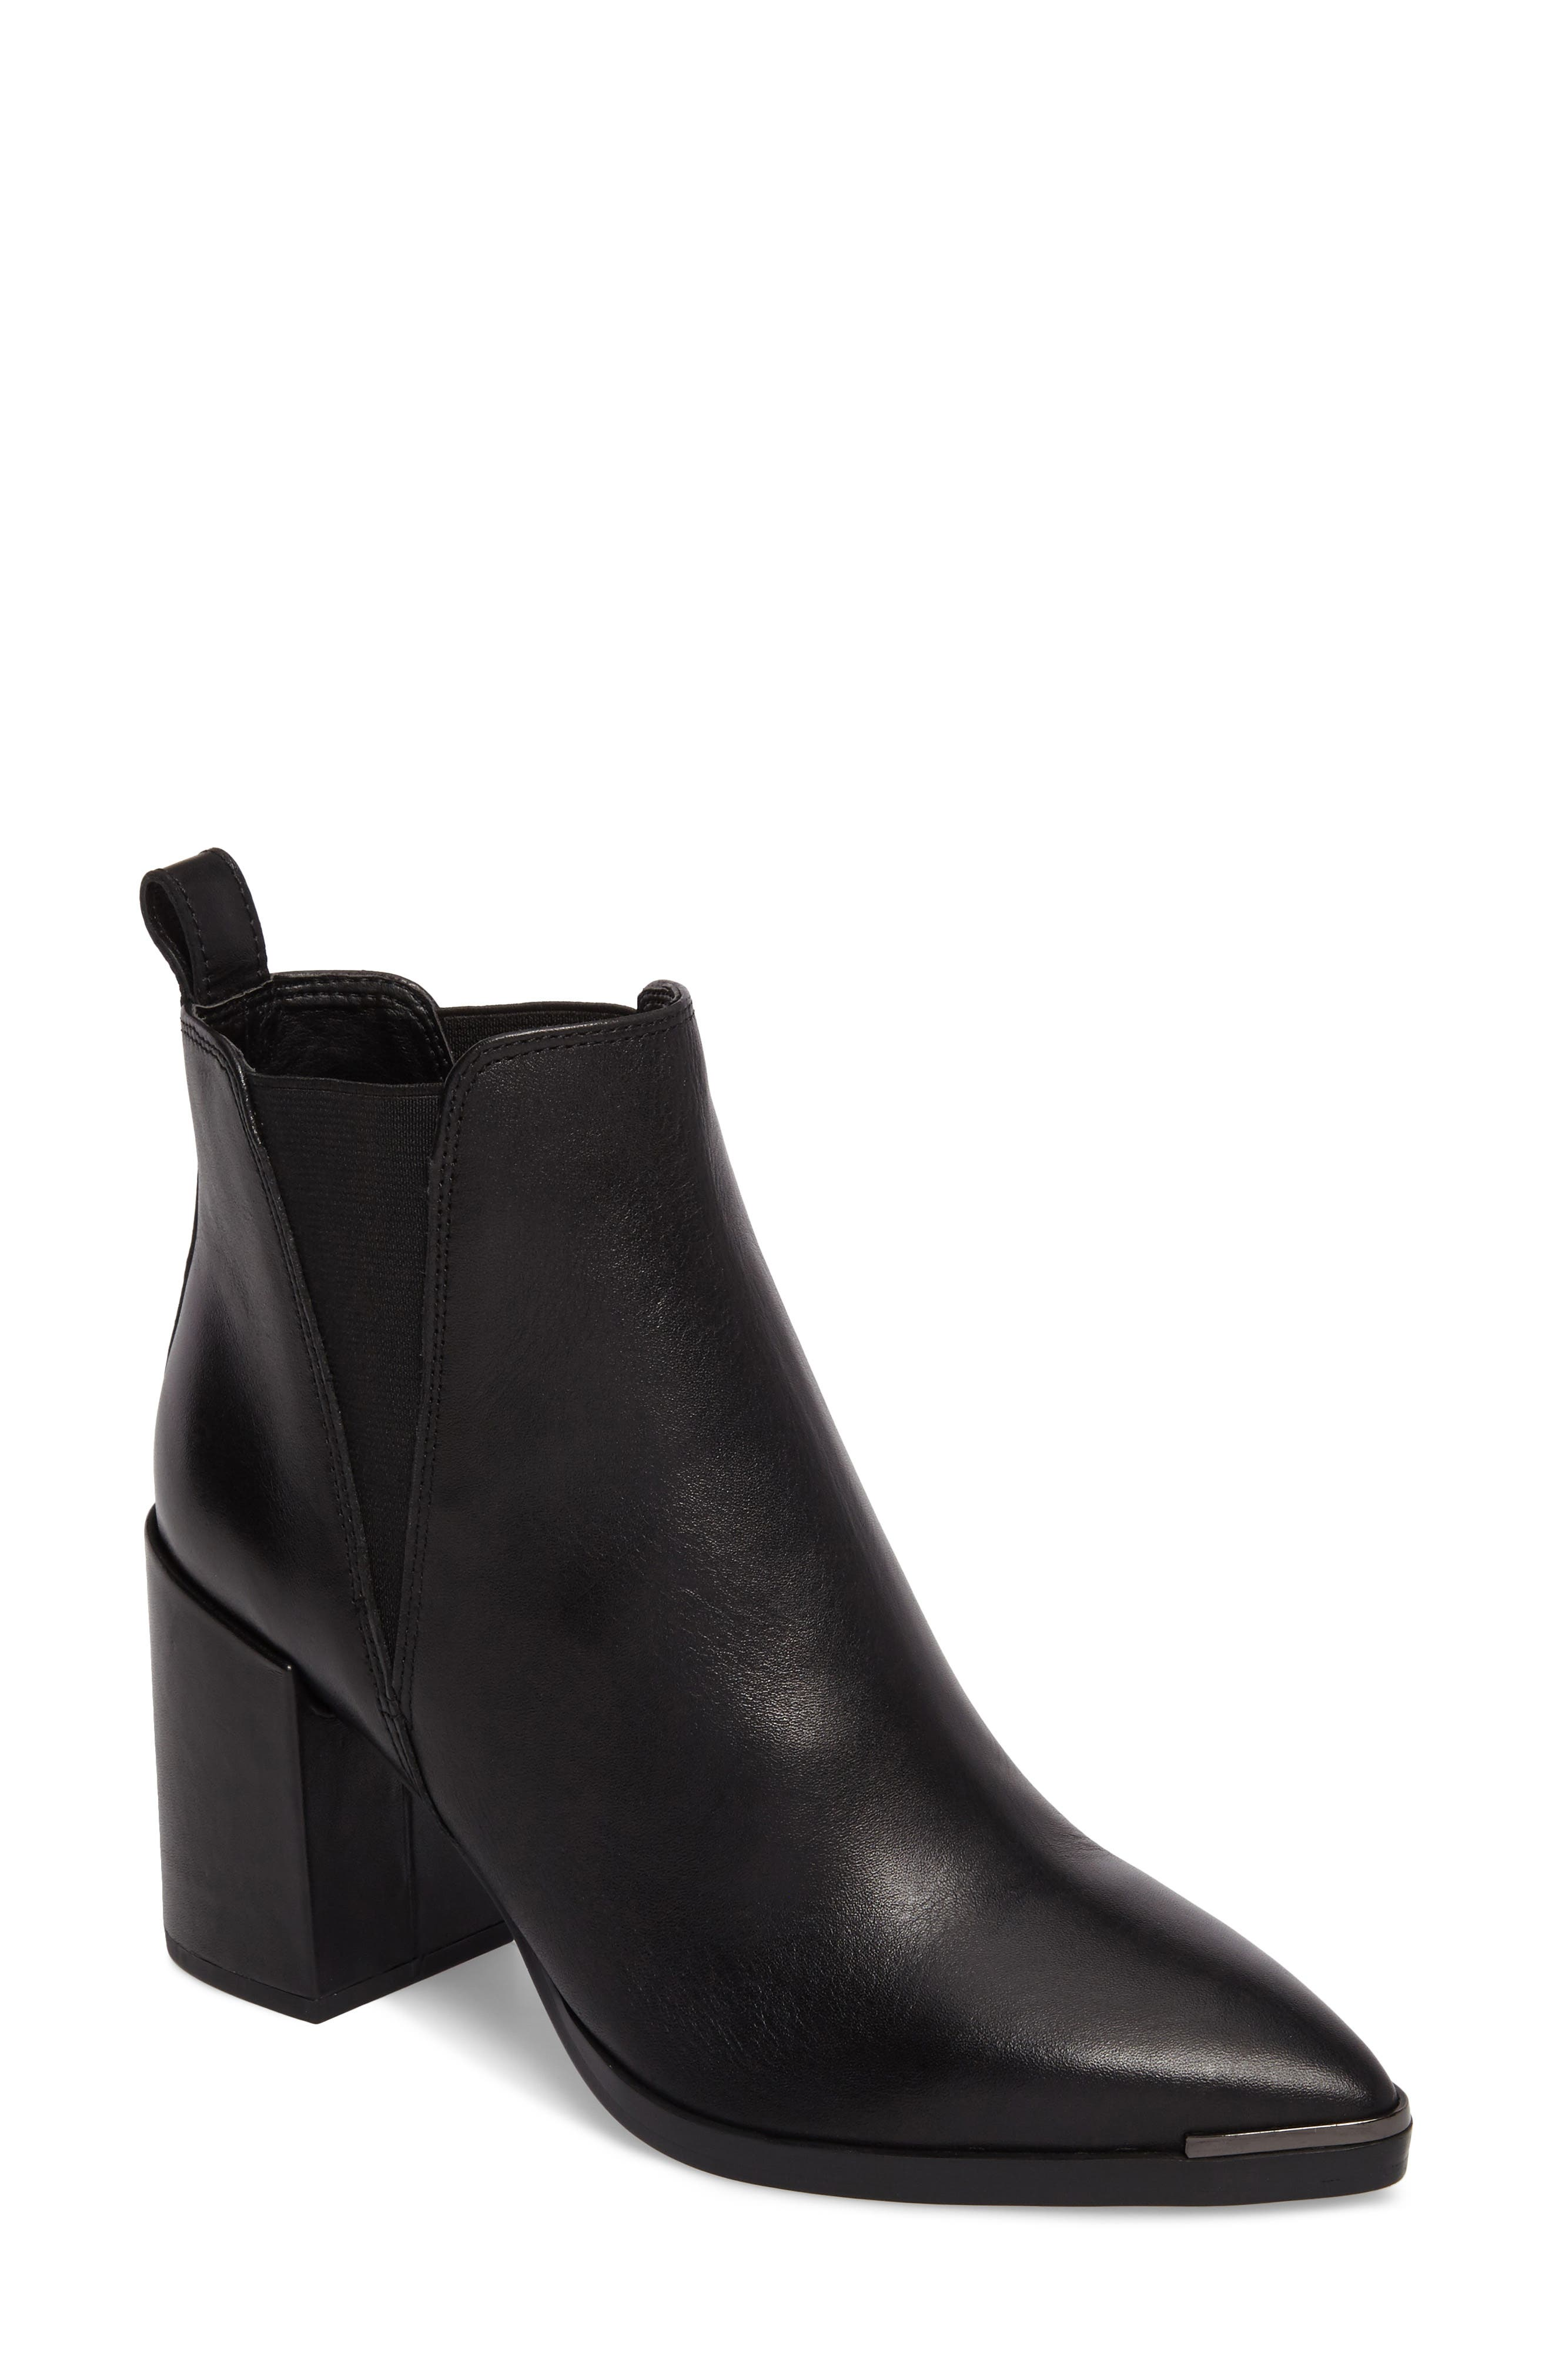 Bello Pointy Toe Bootie,                         Main,                         color, Black Jetta Leather